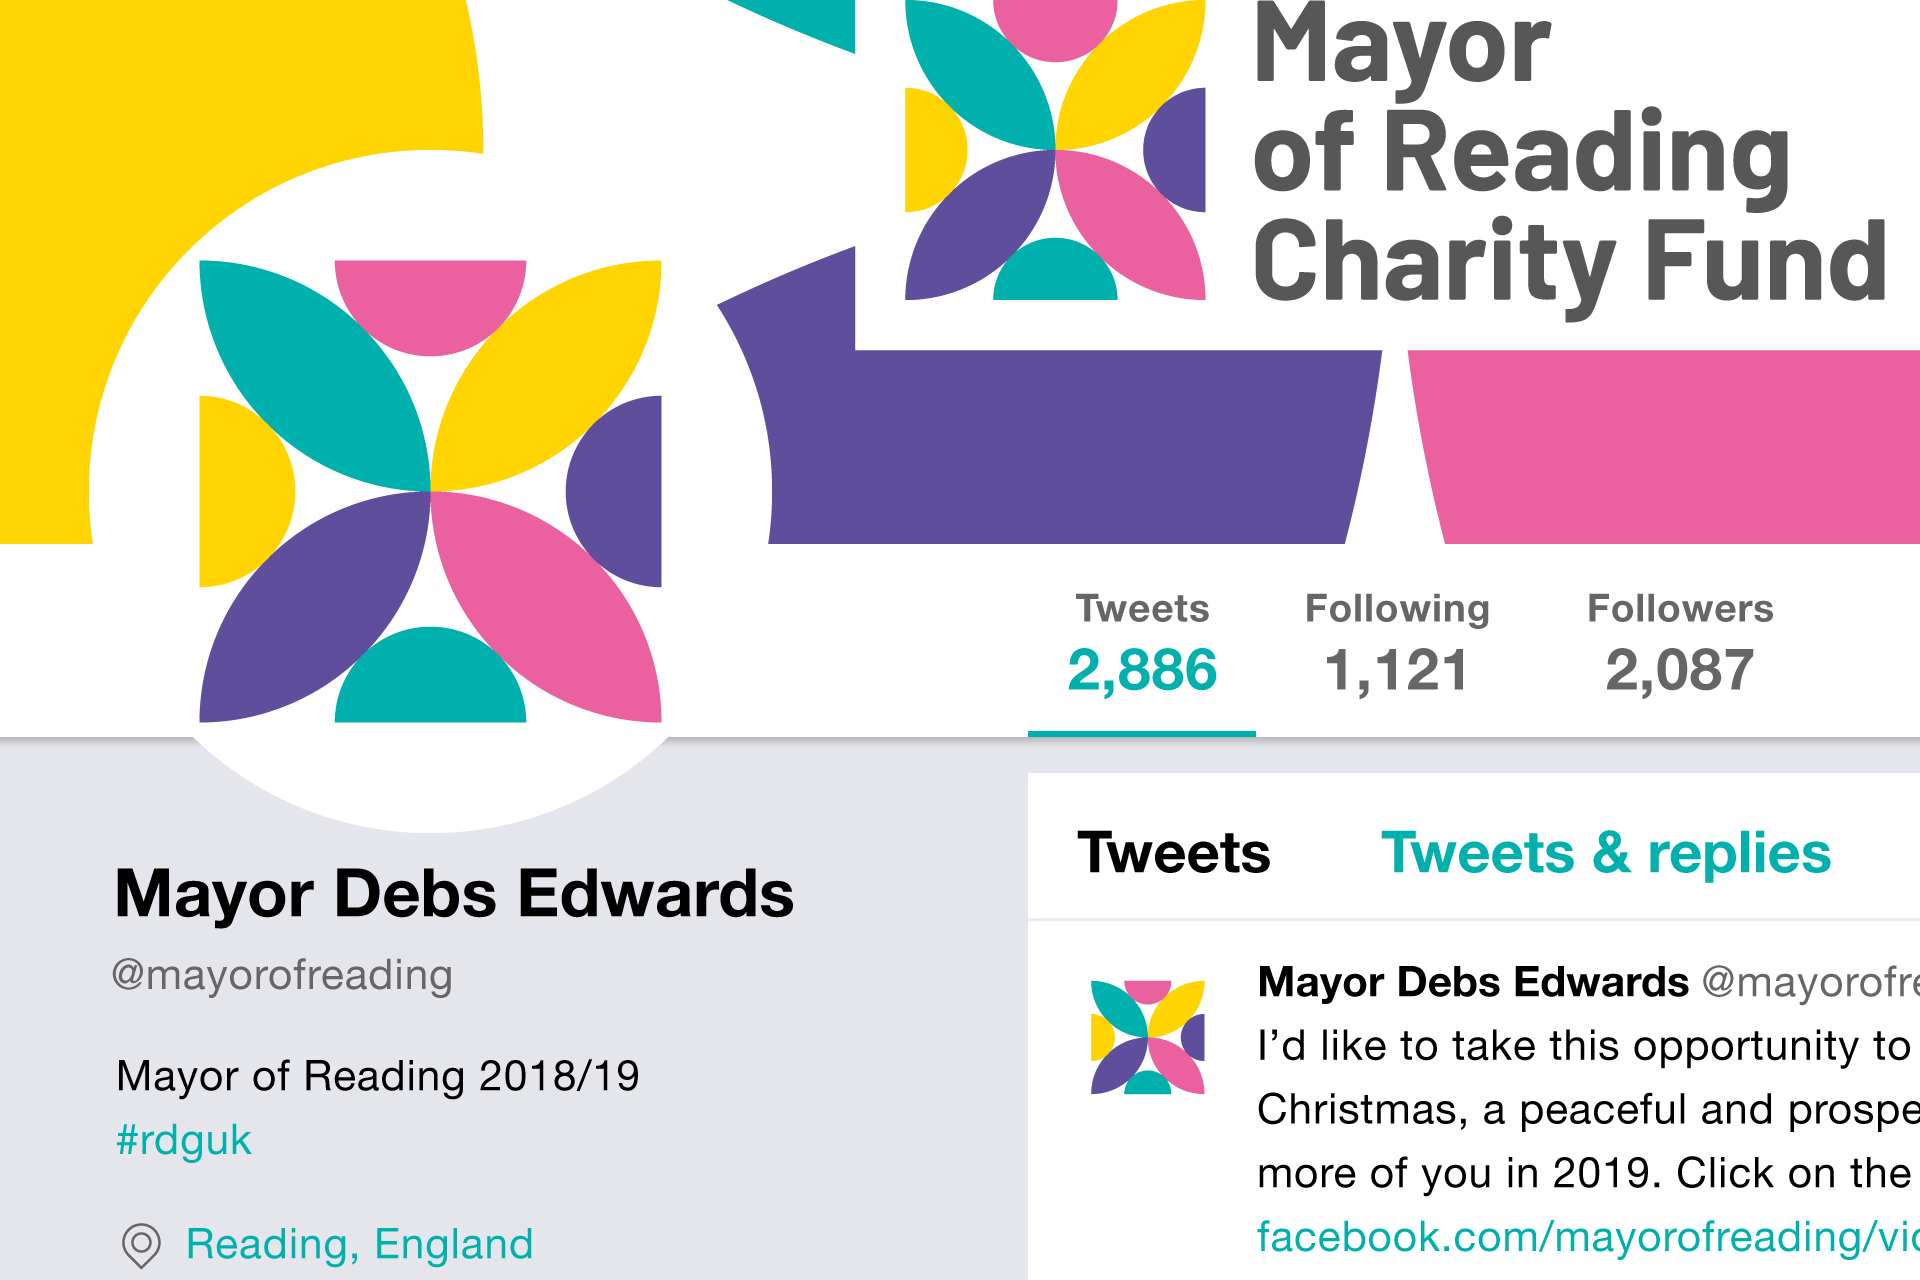 Mayor of Reading Charity Fund Twitter